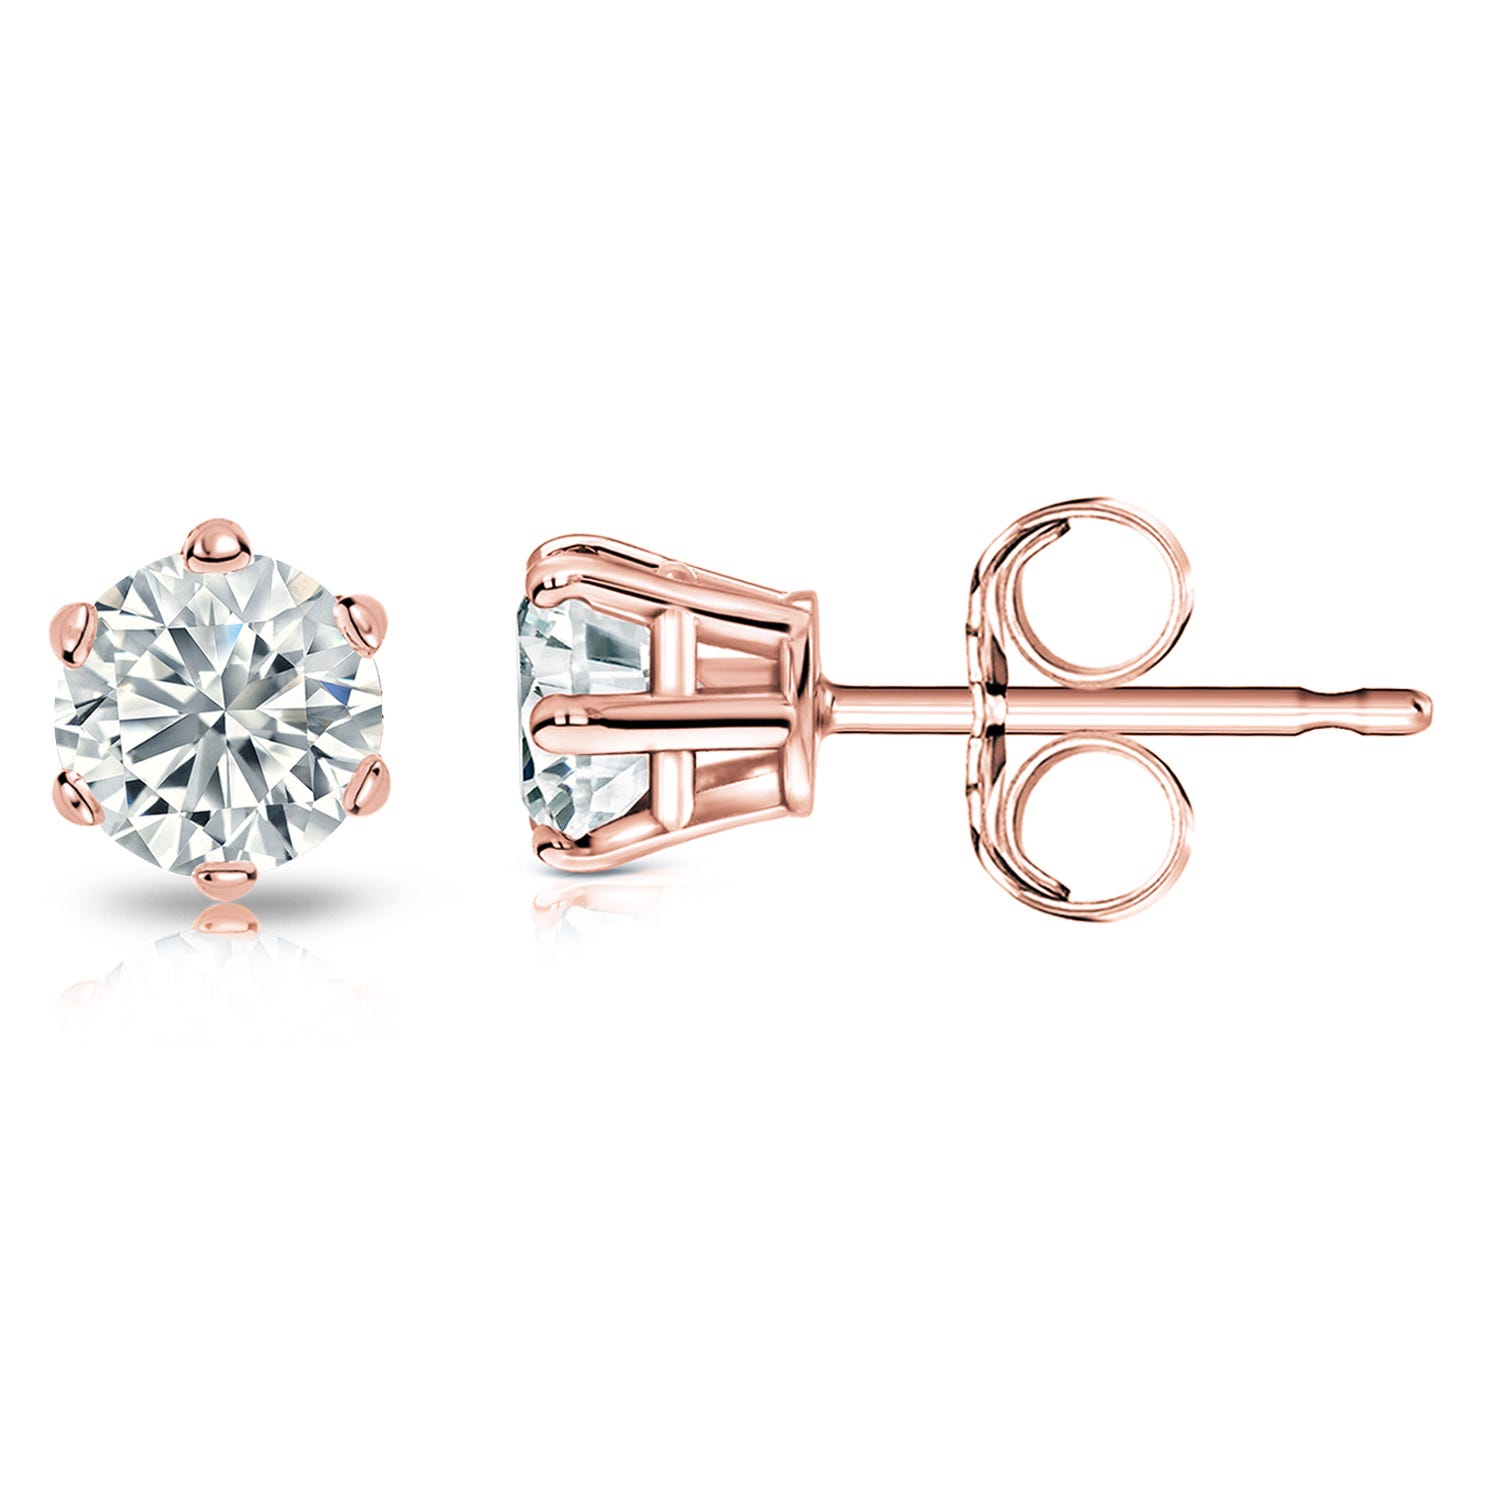 Round Diamond 1ctw. (IJ-SI1) Solitaire Stud 6-Prong Earrings in 14K Rose Gold